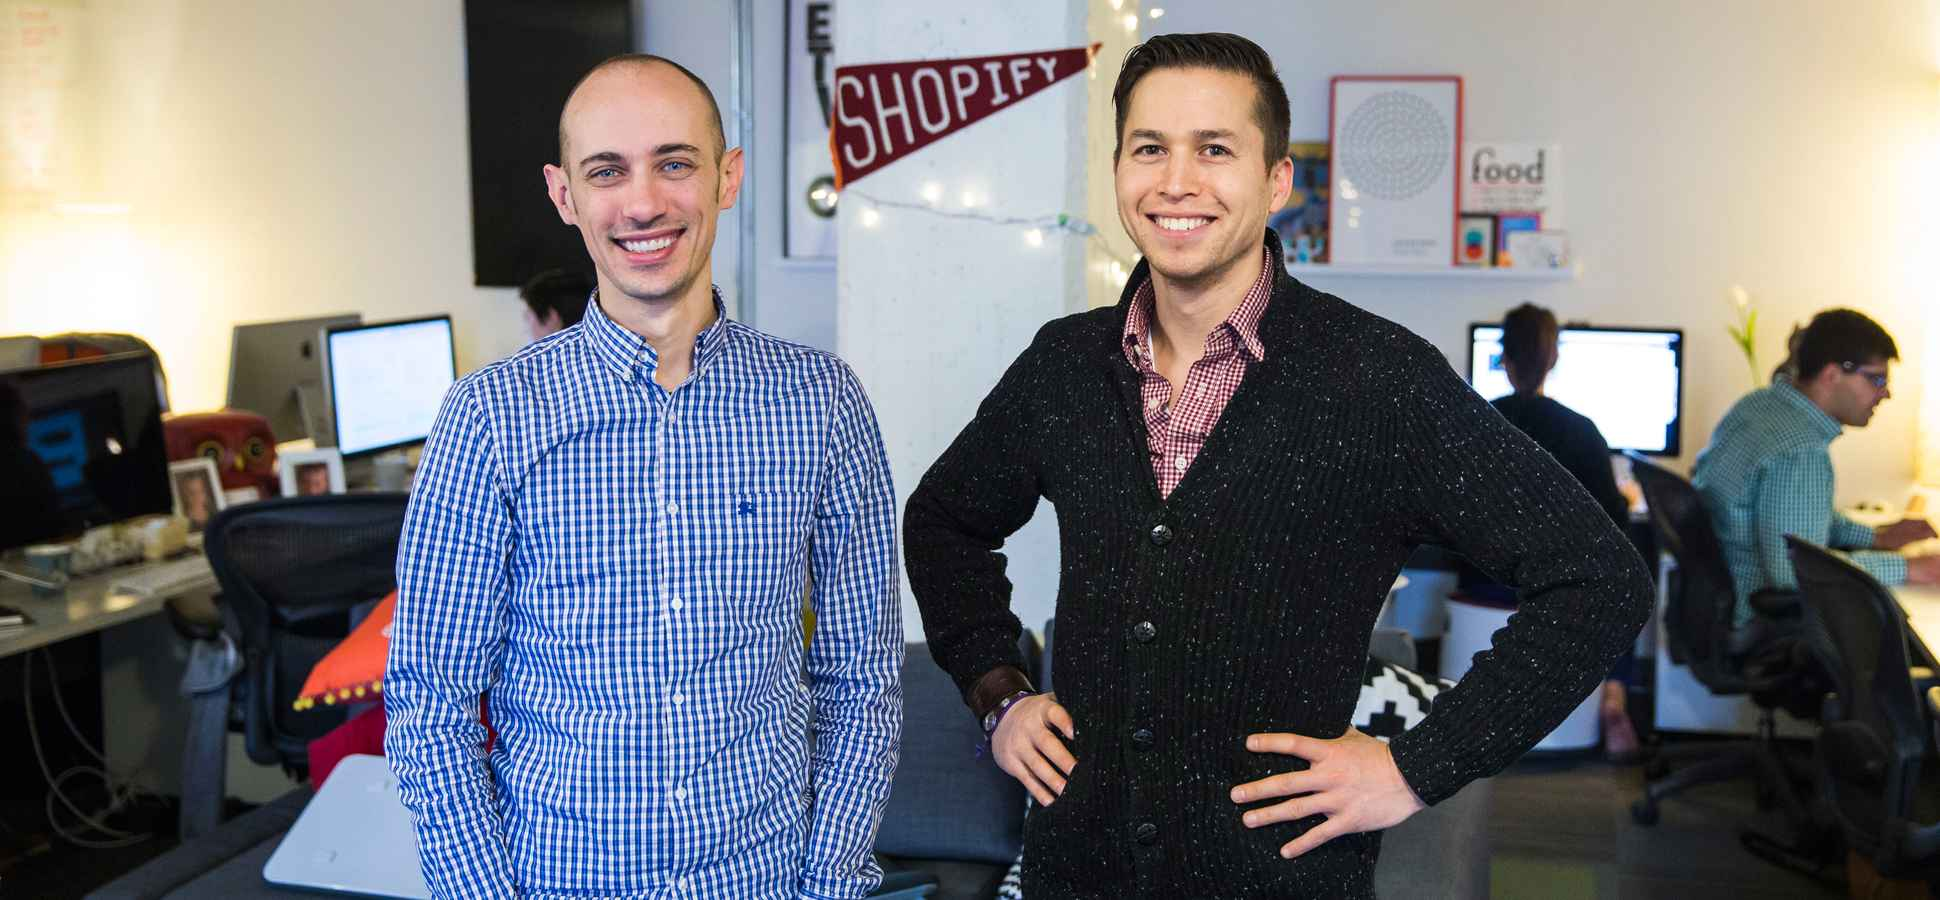 Shopify Review: They Erased Our Store From The Internet While I Was Fulfilling 55 Orders